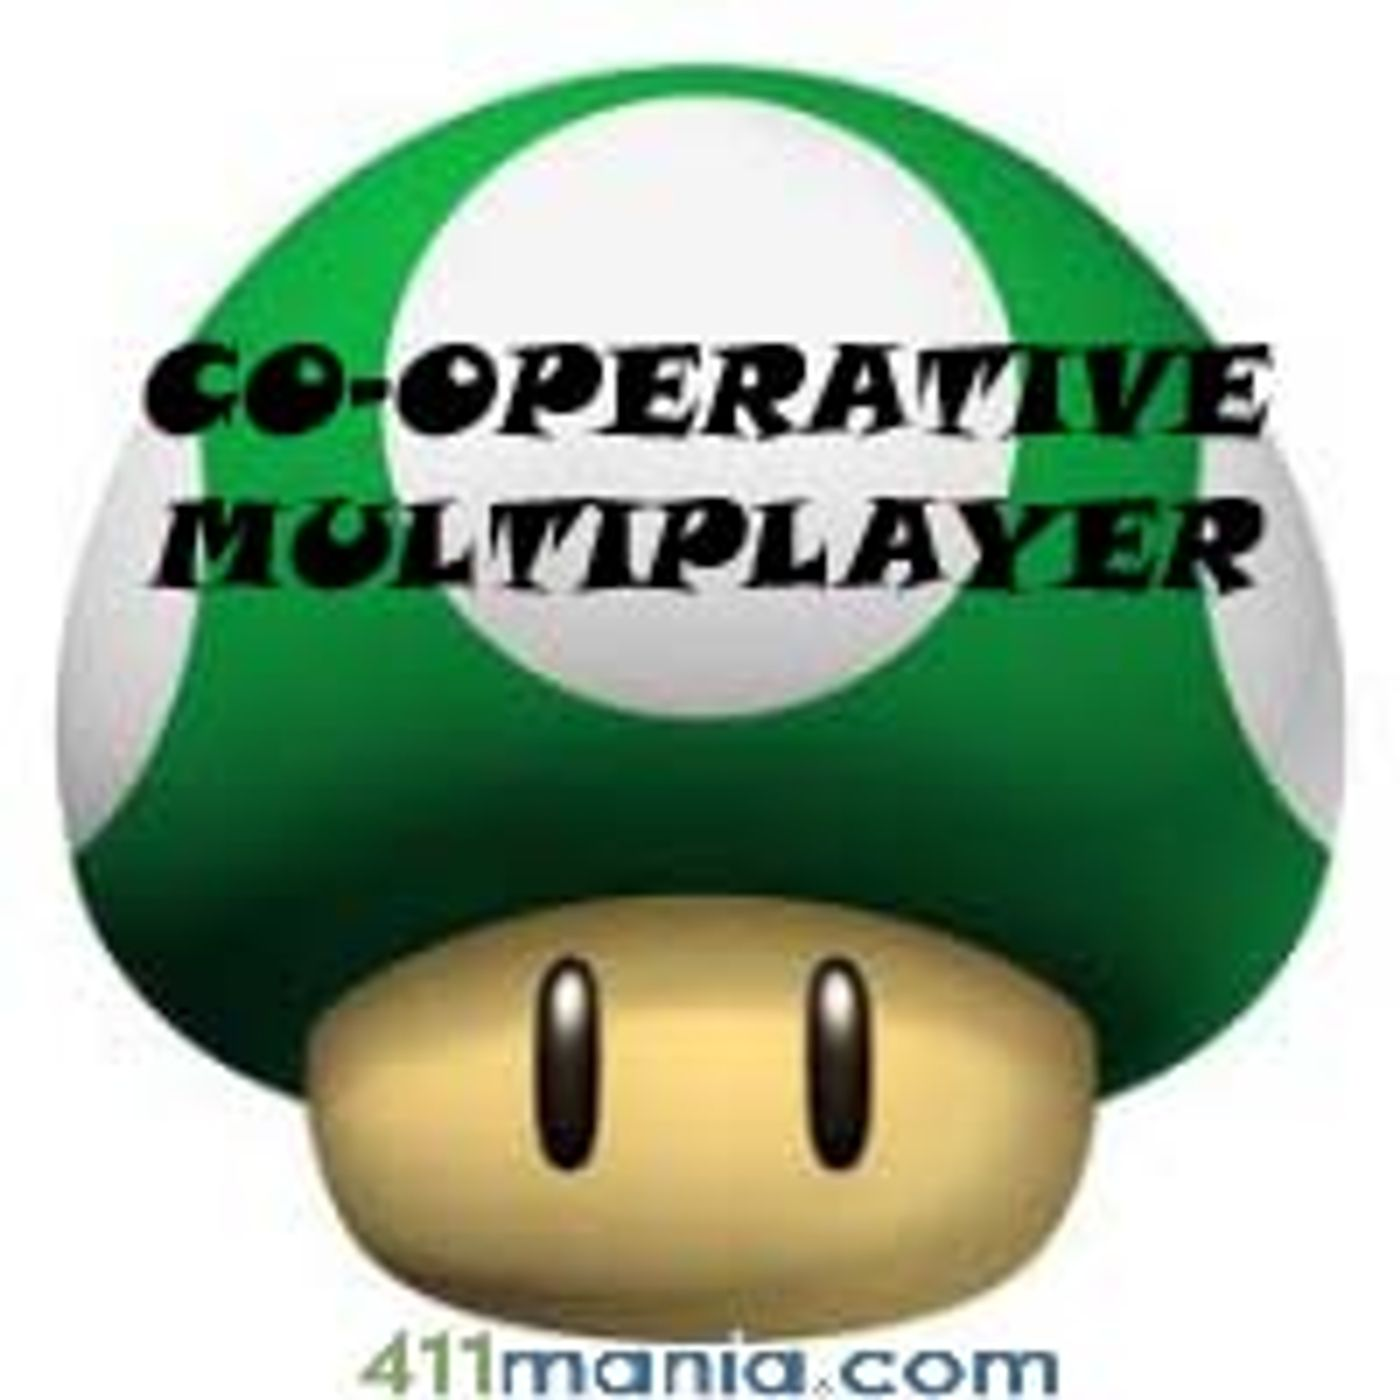 Co-operative Multiplayer